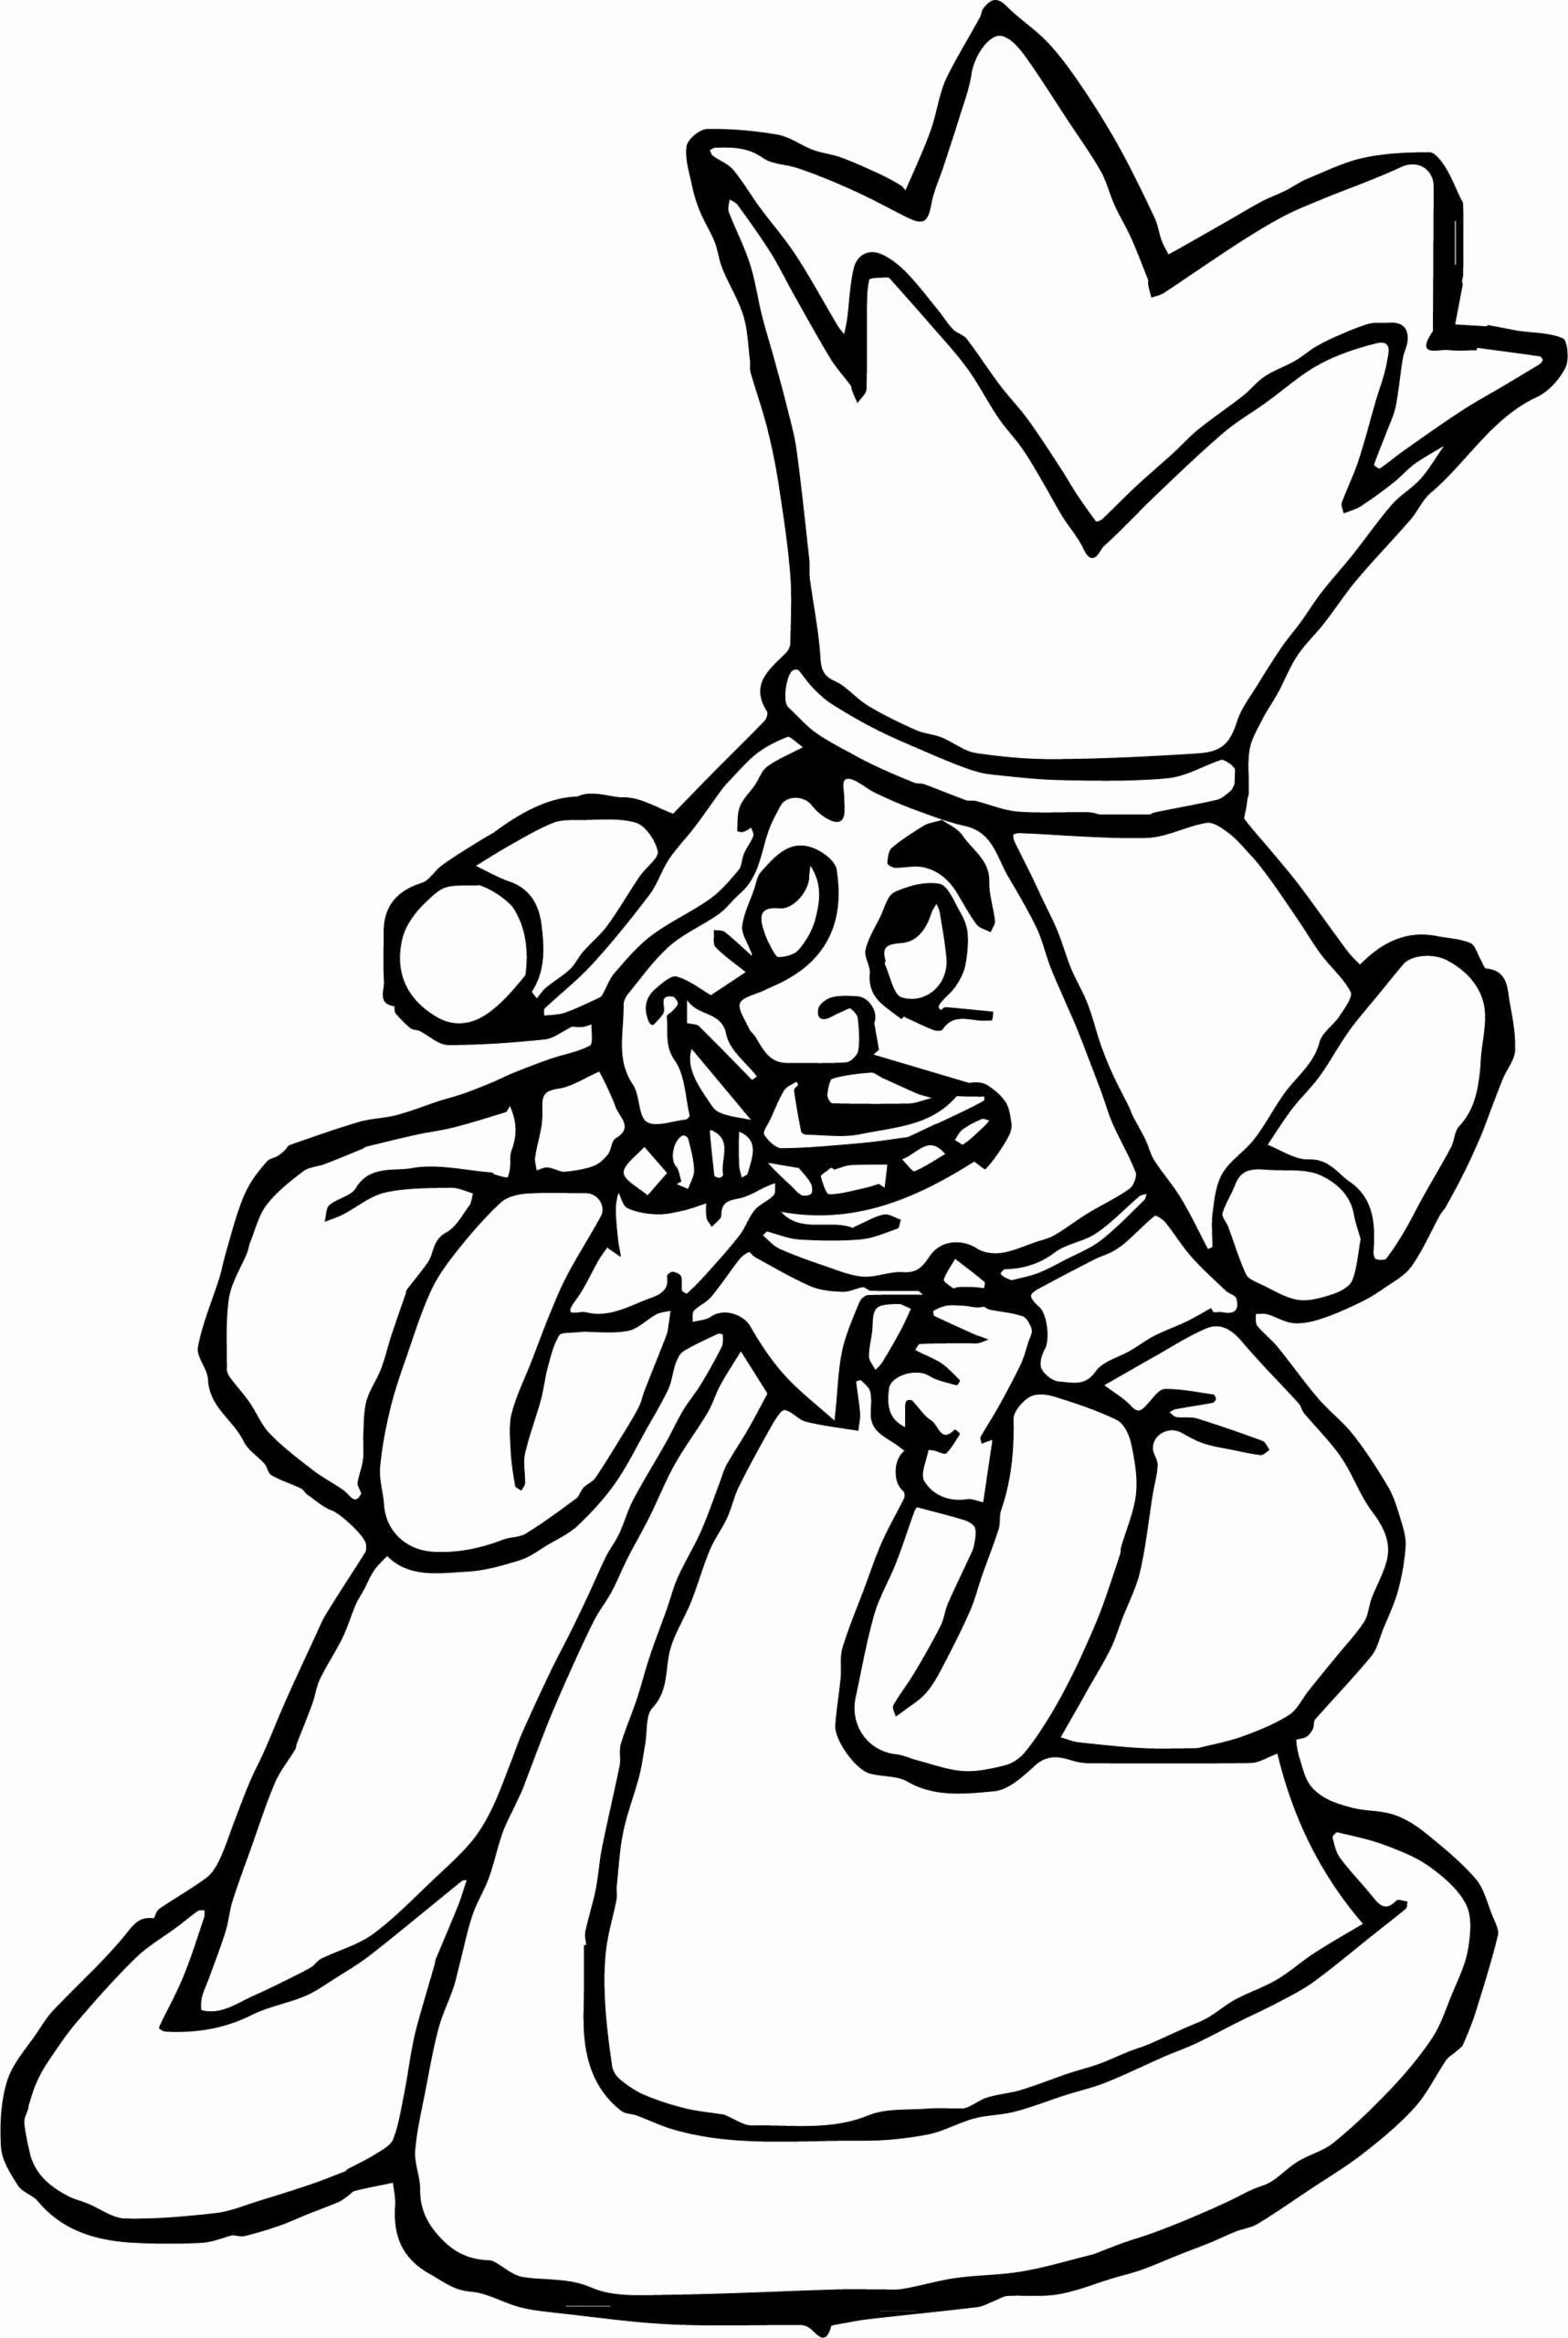 Alice In Wonderland Coloring Book Unique Coloring Pages Cool Alice In The Wonderla Cartoon Coloring Pages Avengers Coloring Pages Animal Kingdom Colouring Book